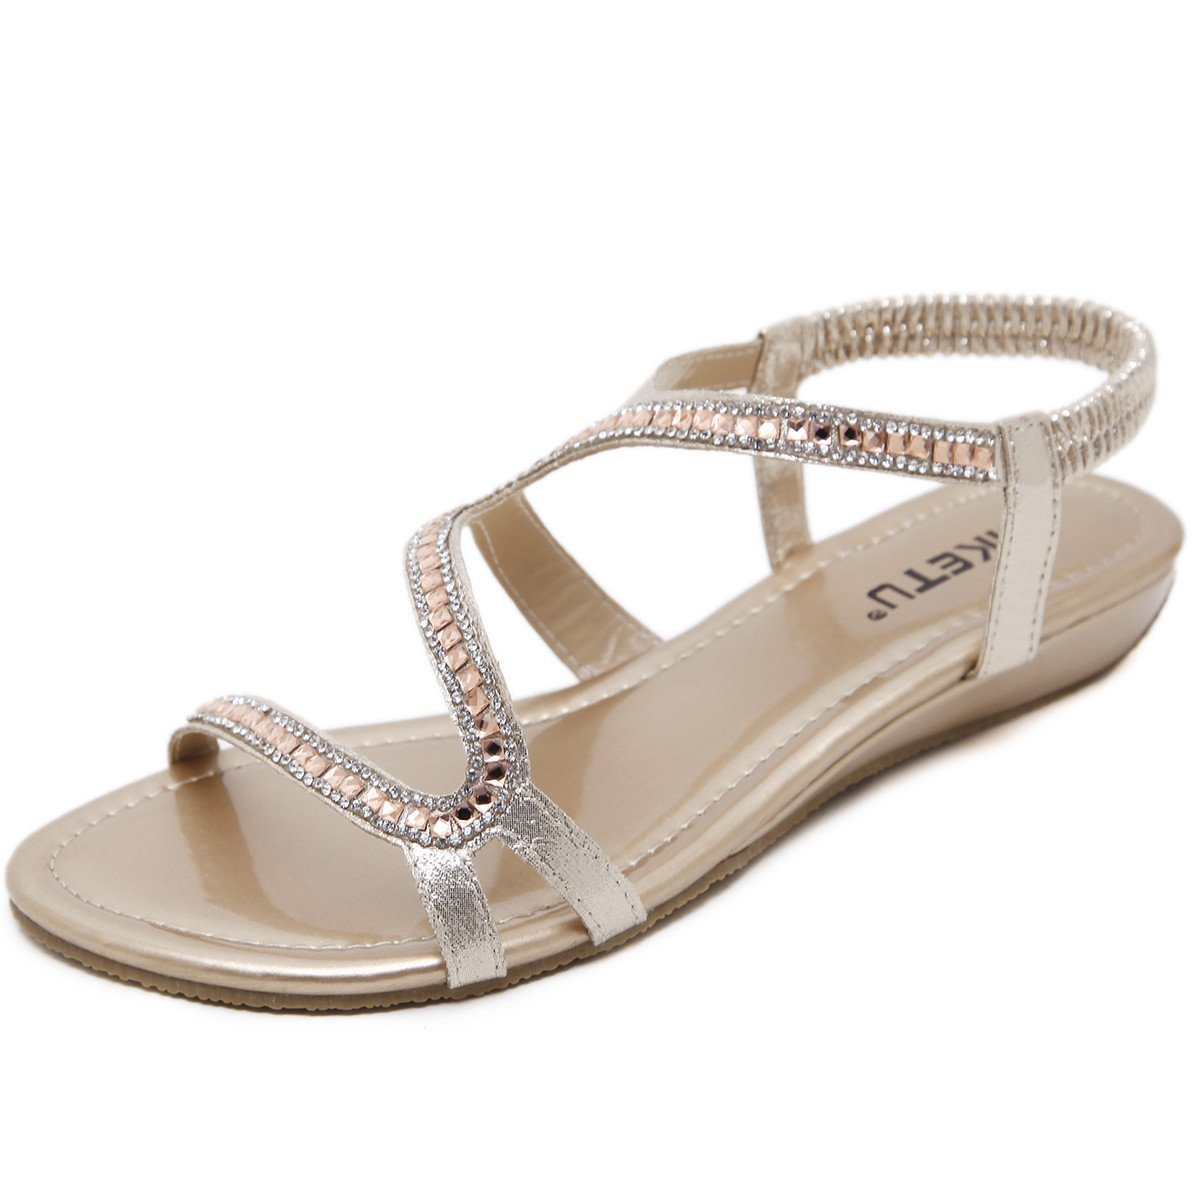 GESDY Women Summer Open Toe Sandals Crystal Rhinestone Low Wedge Strappy Beach Slippers Shoes Party Evening B07CK1DK92 4.5 B(M) US|Gold